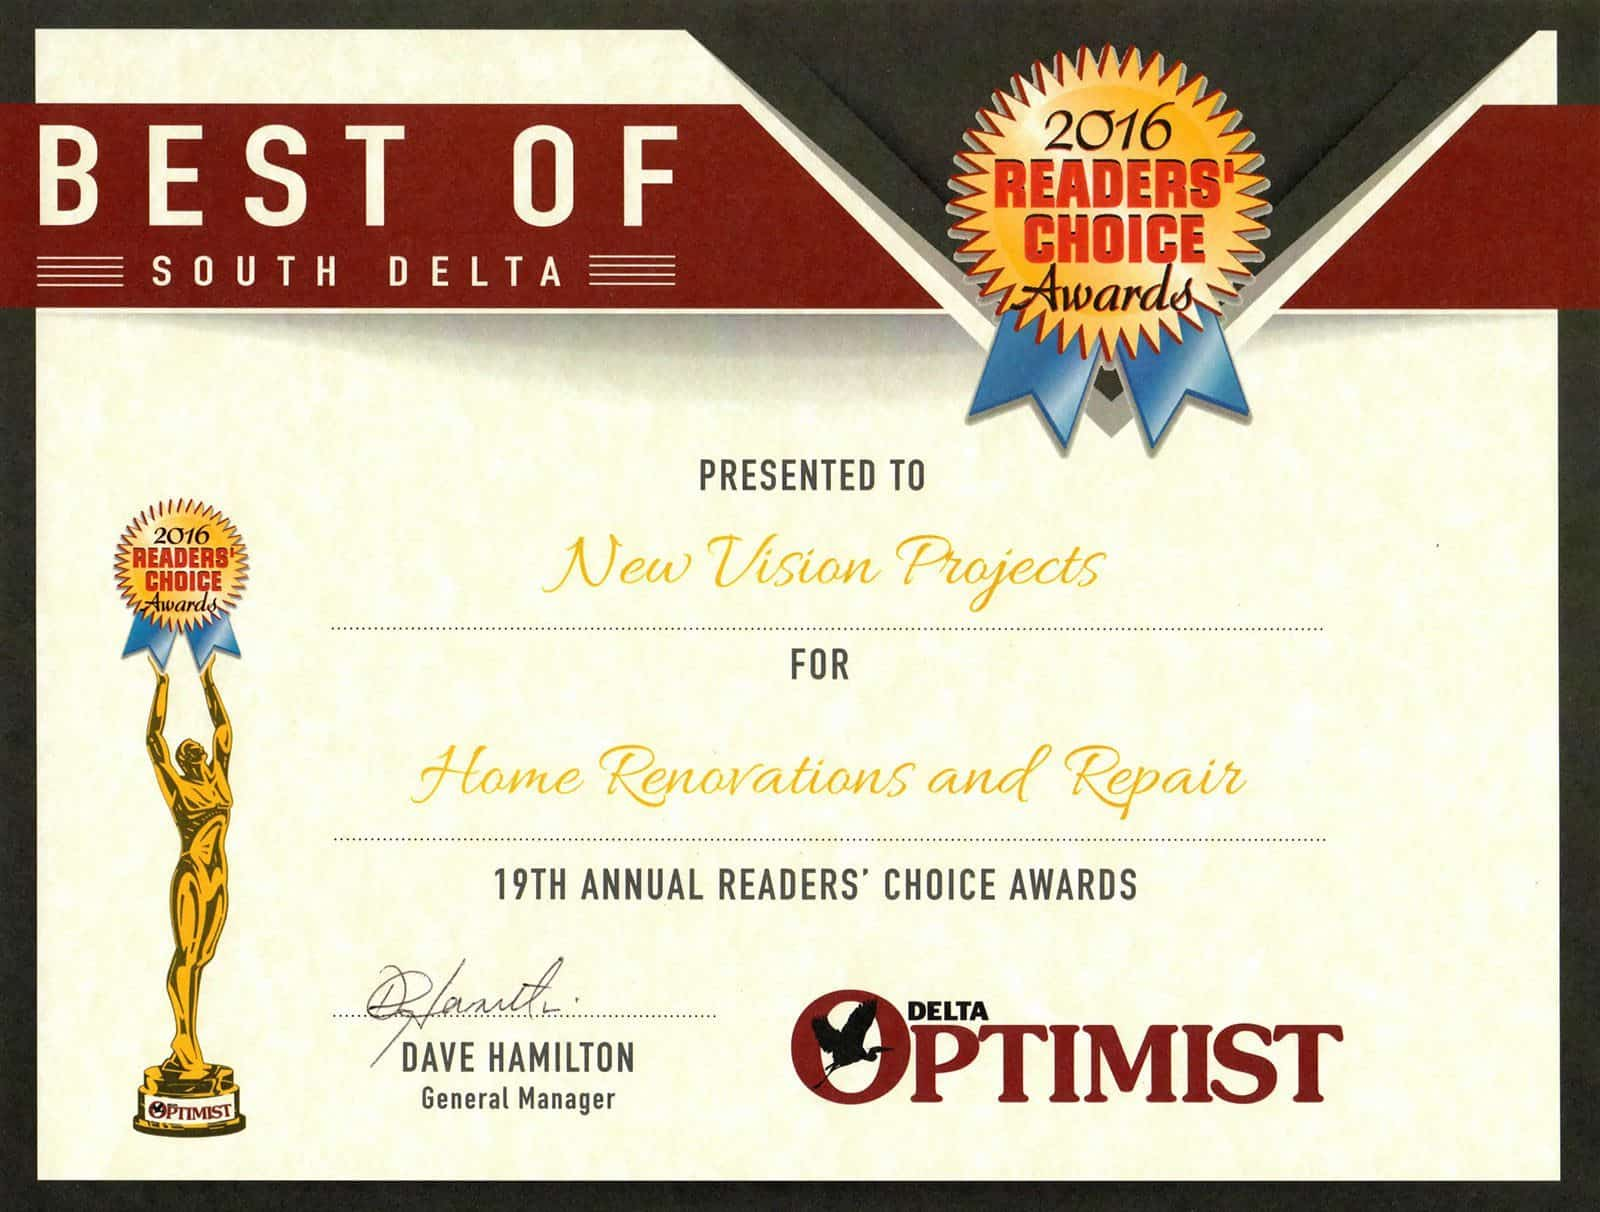 2016 Delta Optimist Readers Choice Awards – Best Home Renovations and Repair